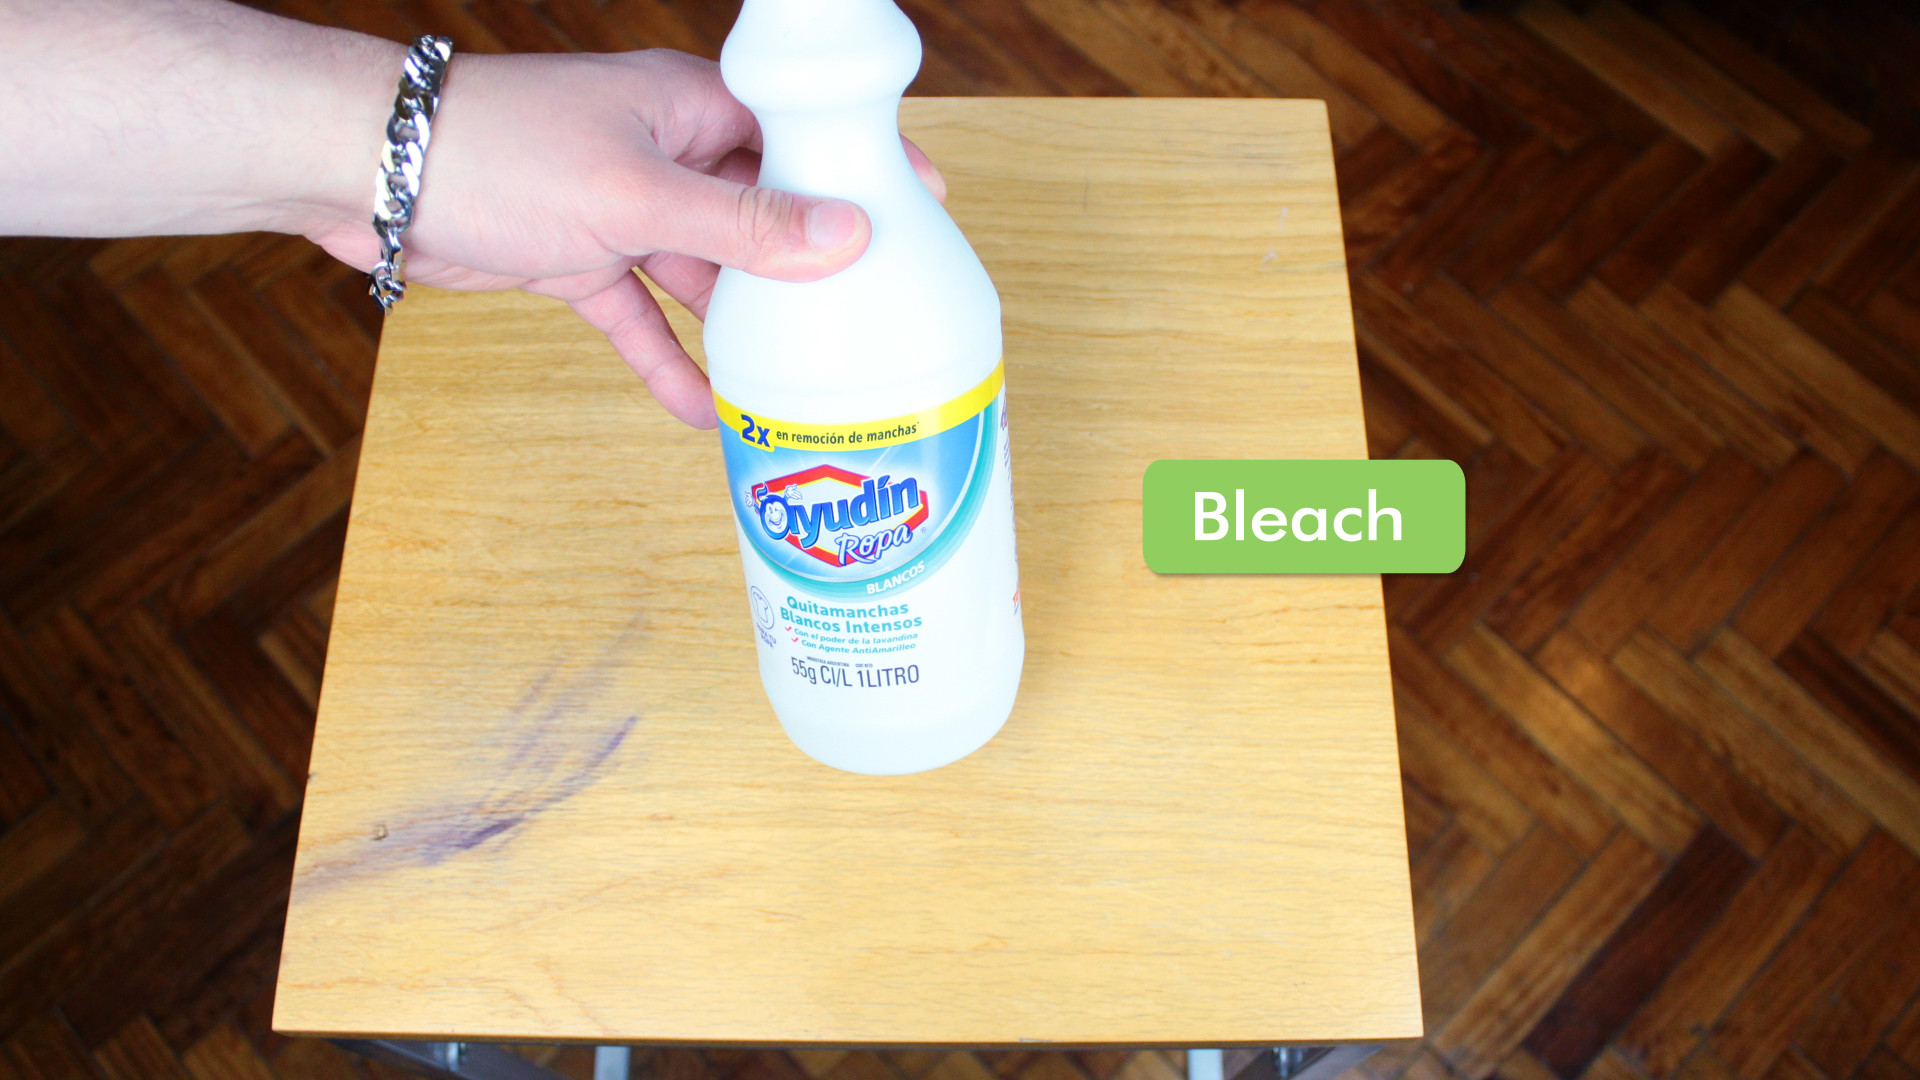 wax pencil for hardwood floor of 4 ways to remove ink stains from wood furniture wikihow regarding remove ink stains from wood furniture step 12 version 5